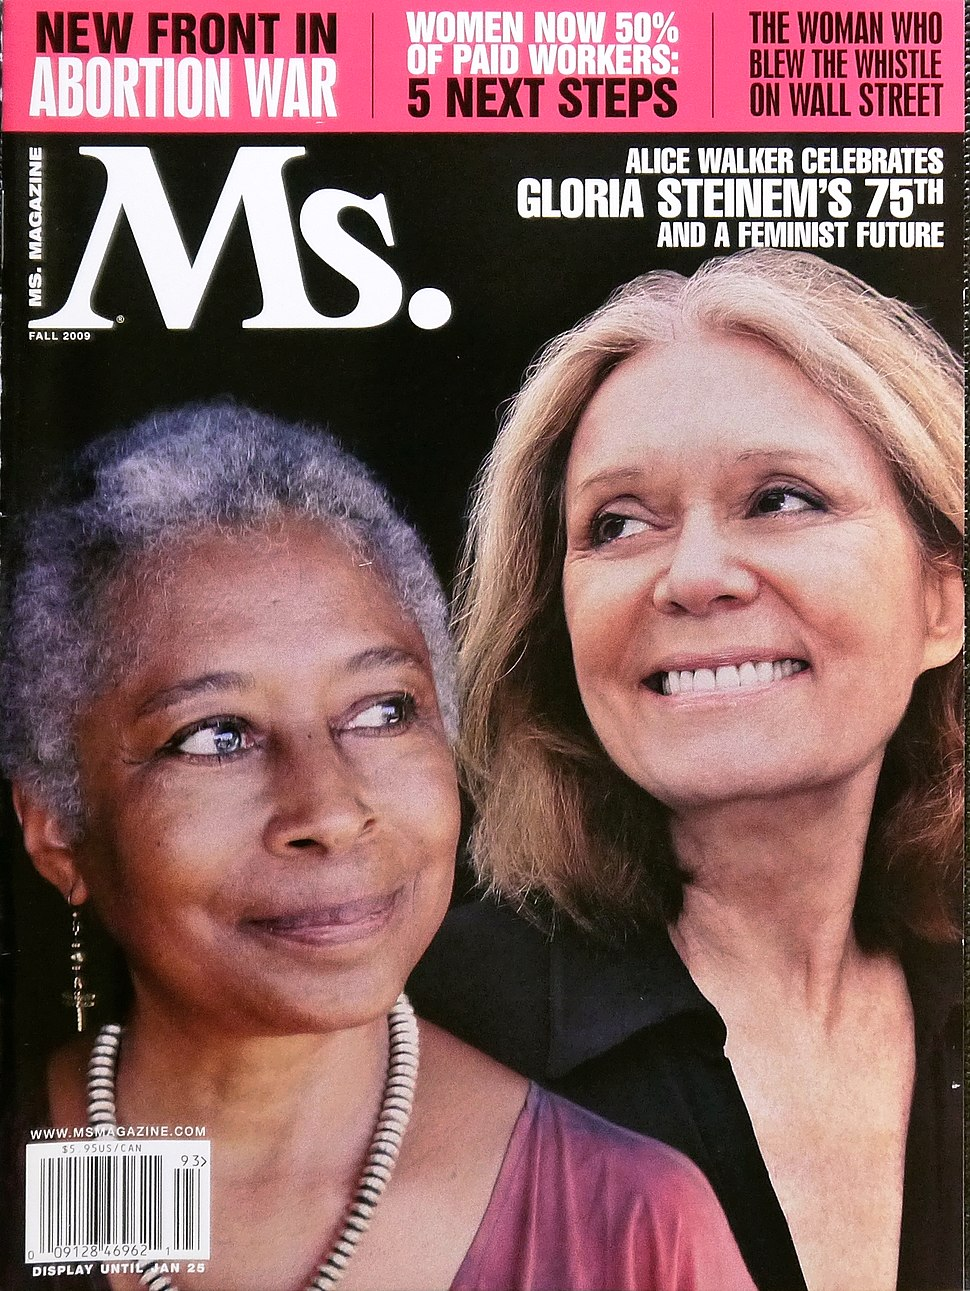 Ms. magazine Cover - Fall 2009(1)